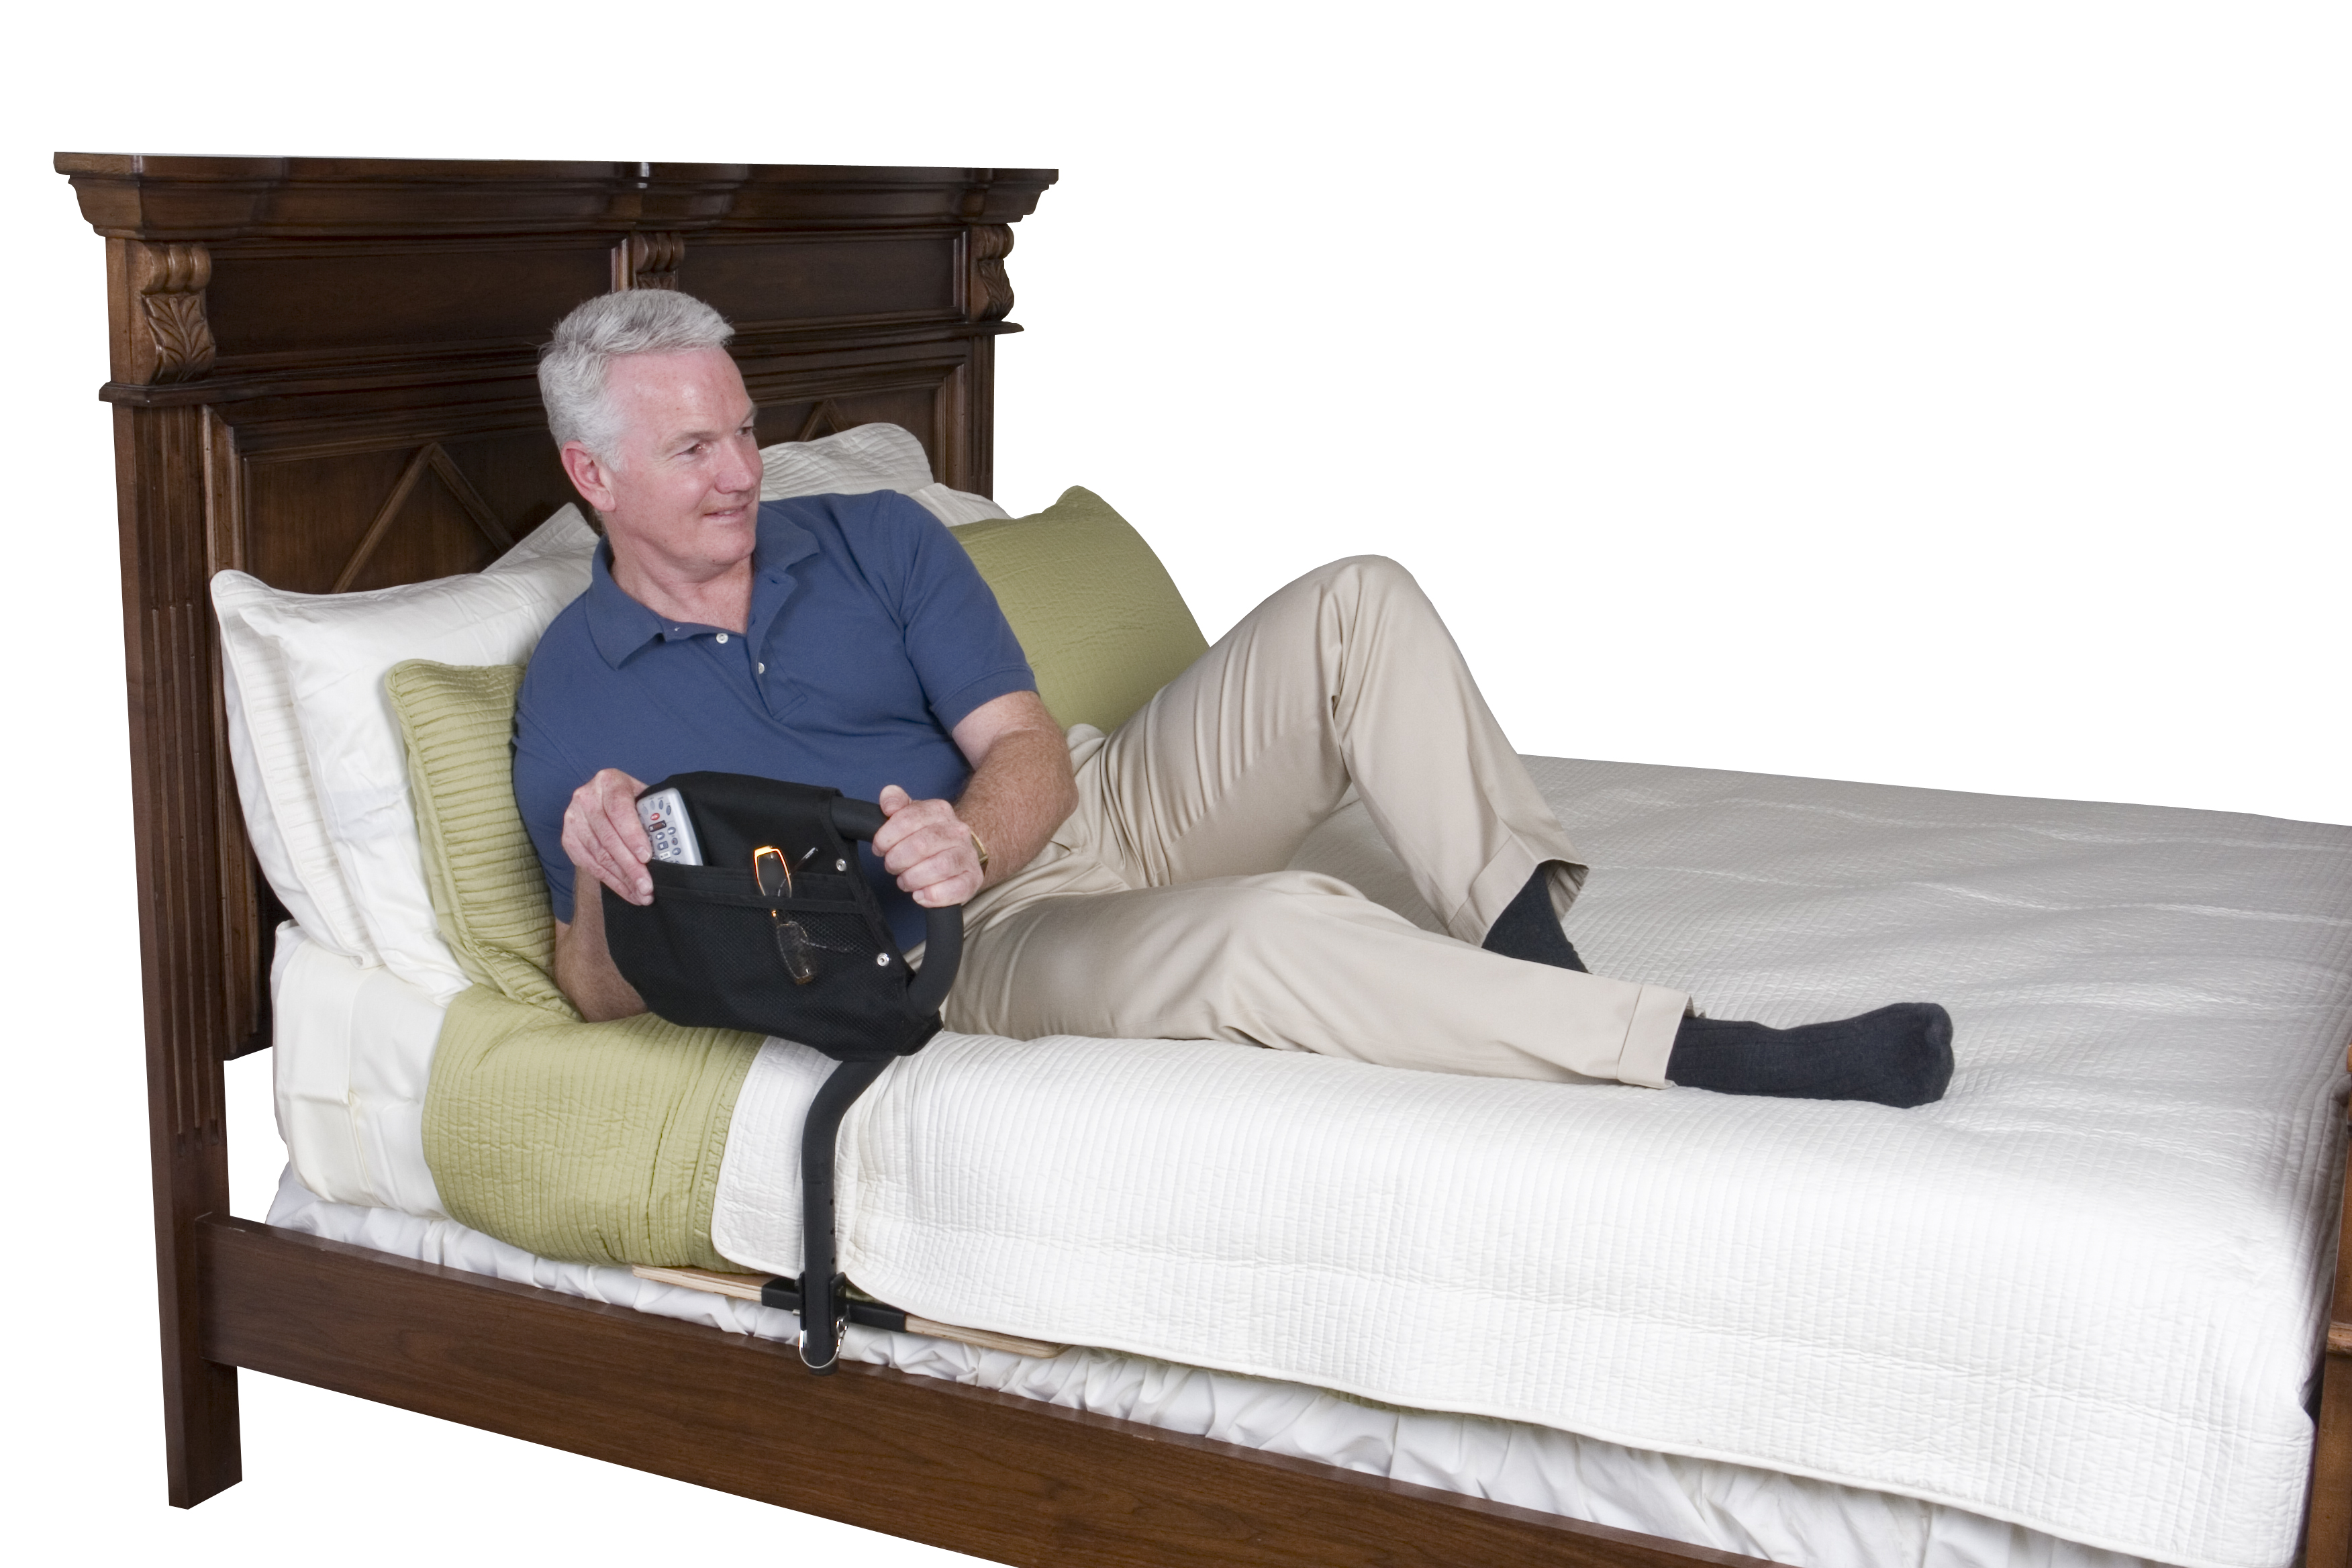 and rail safety adult rassist pin medical bed elderly seniors drive rails for handle care elde handles adjustable